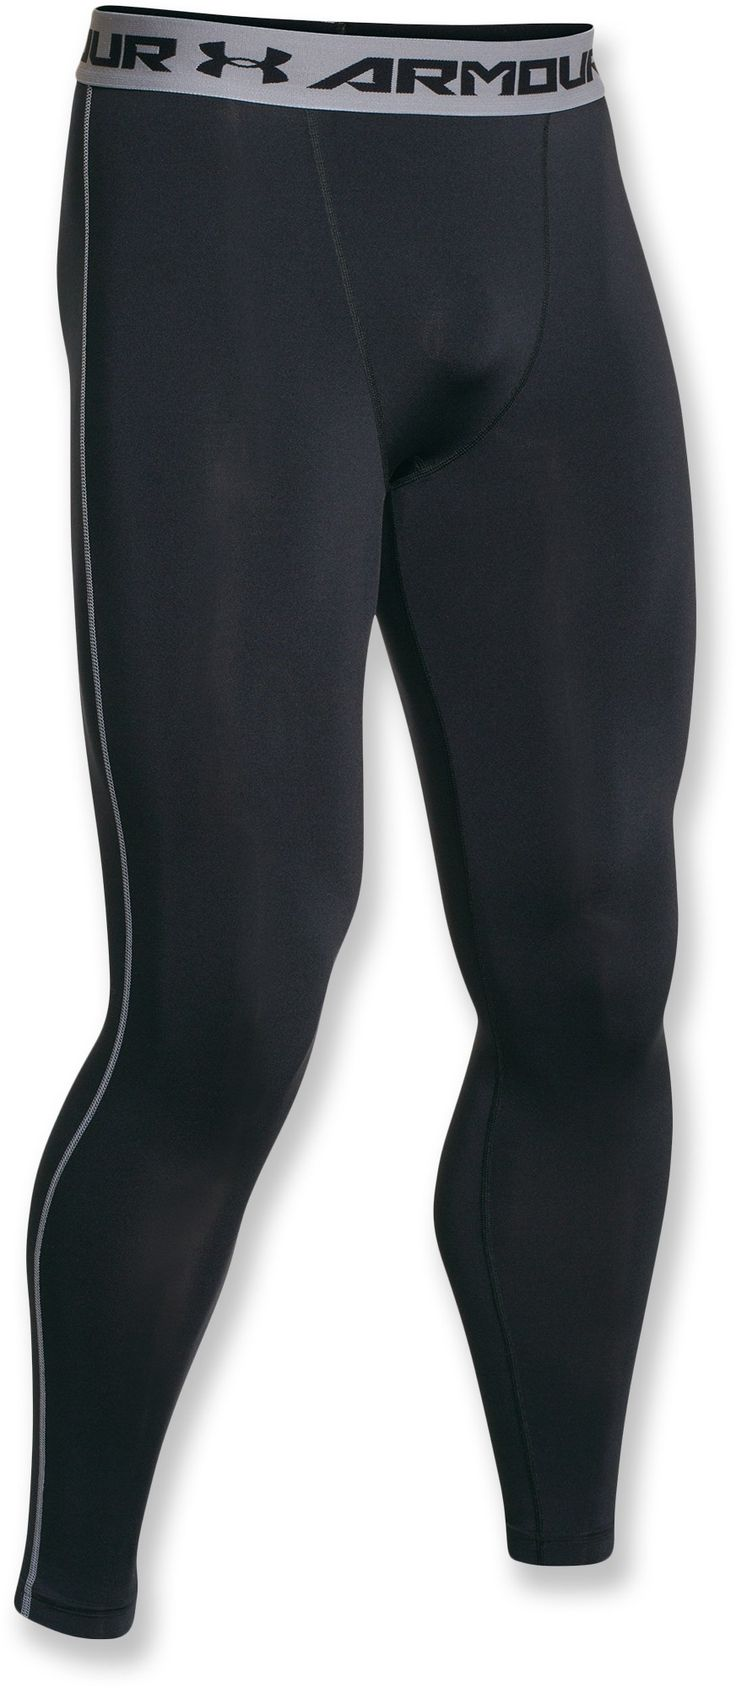 Under Armour Male Compression Tights - Men's